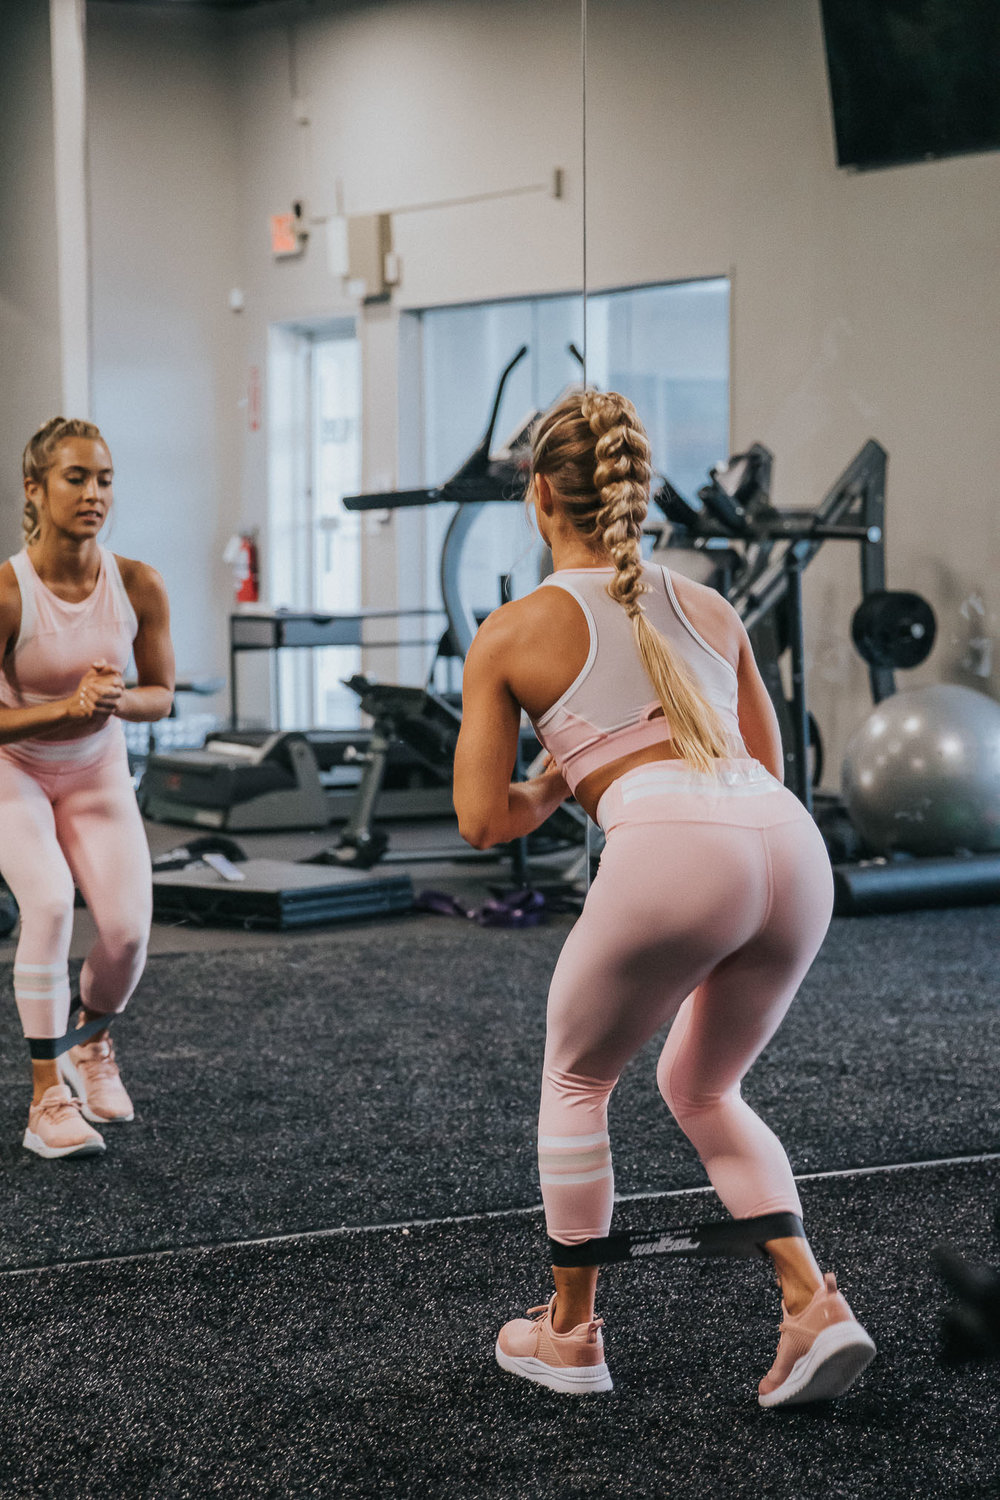 8-WEEK PERSONALIZED WORKOUT PLAN - $150 for 2 monthsThis program is specifically tailored to the individual's goals - specifically body composition, health, and performance. With weekly check-ins & updates to the plan, plus monthly fitness assessments, no amount of progress will go unnoticed. This program can be created to fit an individual's lifestyle needs, whether that's a plan for gym workouts, home workouts, or a combination of the two.Initial 8 week program purchase is required, but once that is completed, individual may continue the coaching on a month-to-month basis.